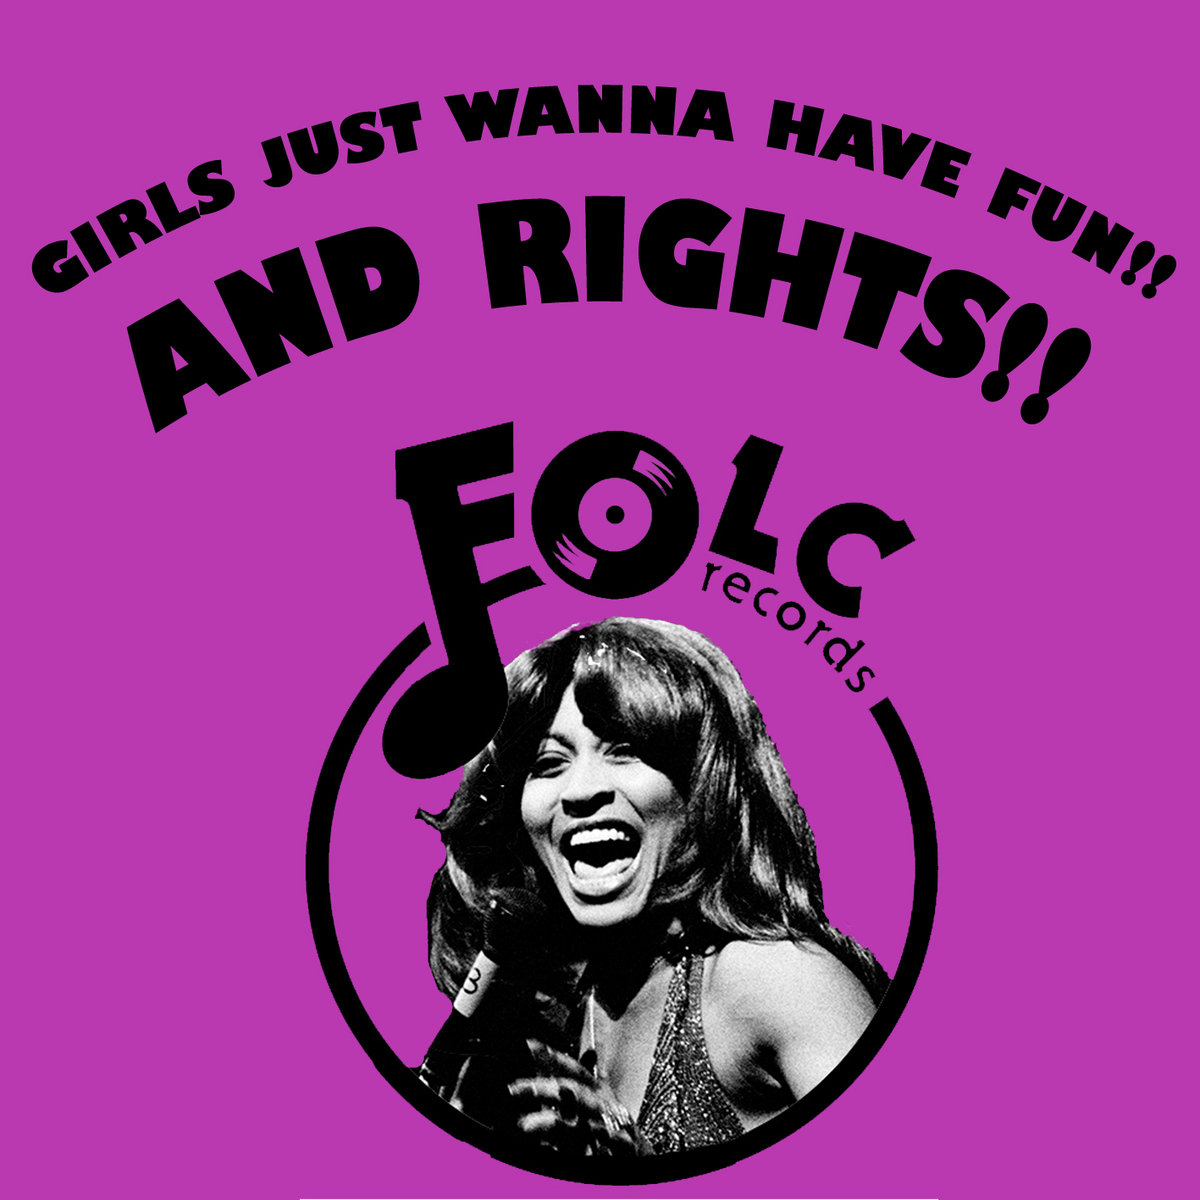 girls just wanna have fun and rights folc records